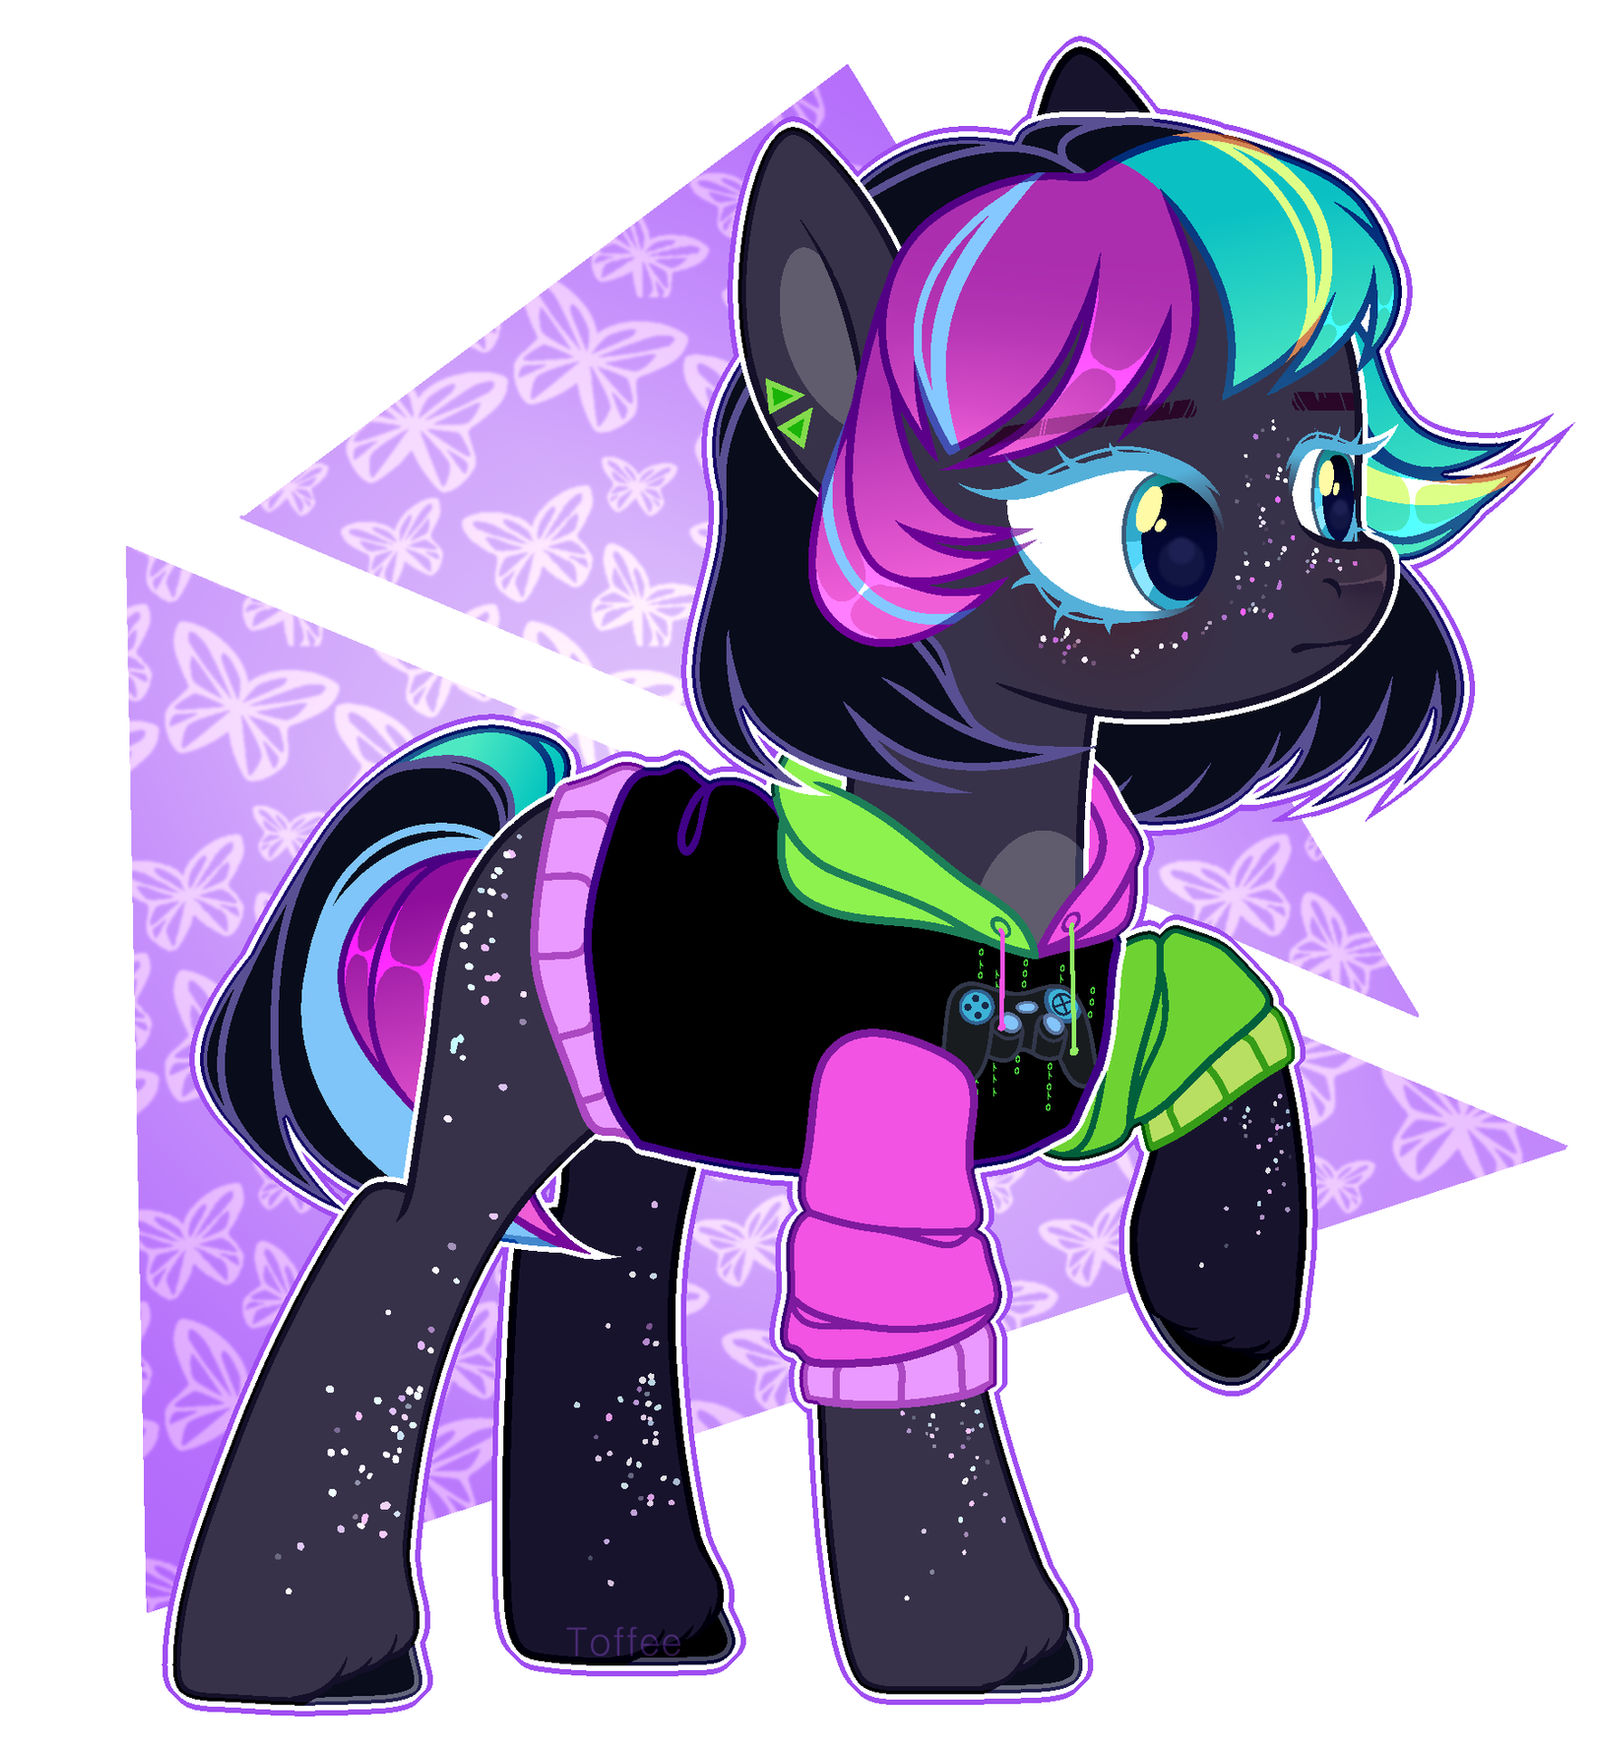 mlp oc commission by toffeelavender on deviantart mlp oc commission by toffeelavender on